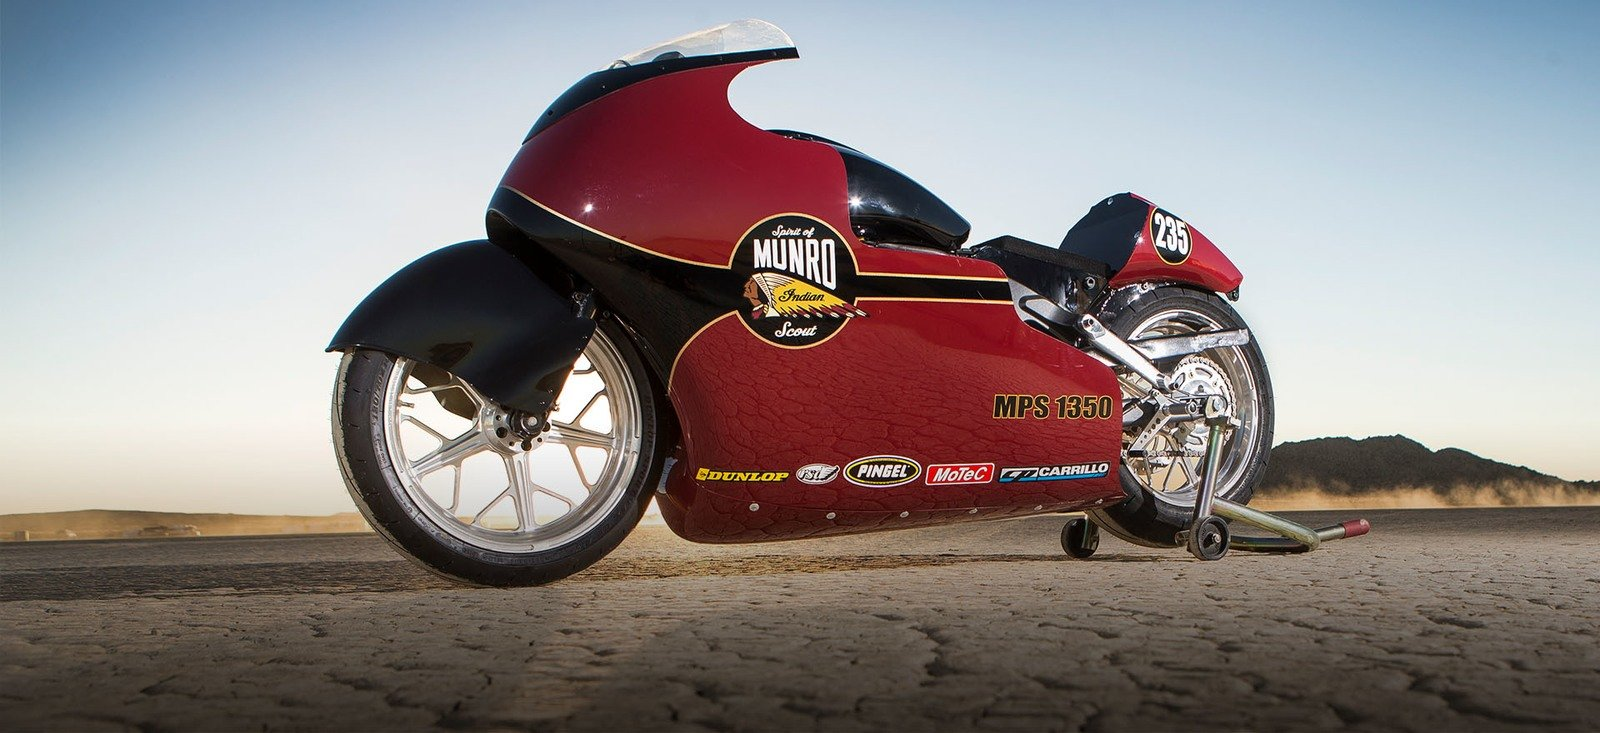 Land Speed Record >> Facts About The Motorcycle Indian Will Use To Break Records At Bonneville This Weekend. | Top Speed